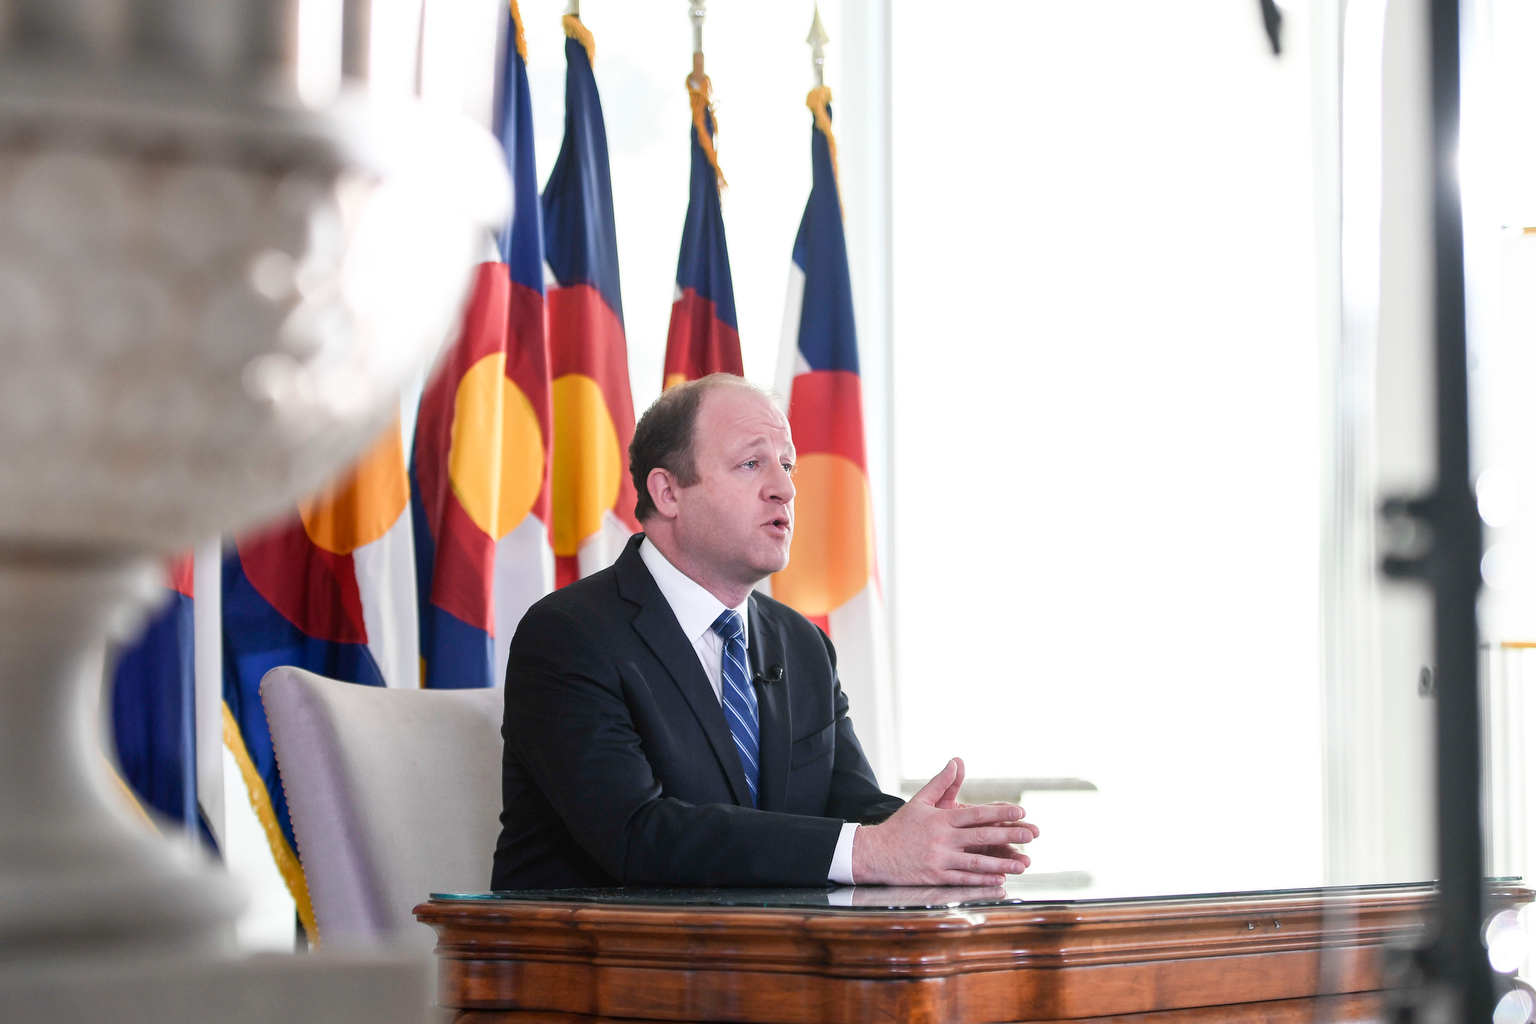 Jared Polis delivers an address from the governor's mansion on Monday, April 6